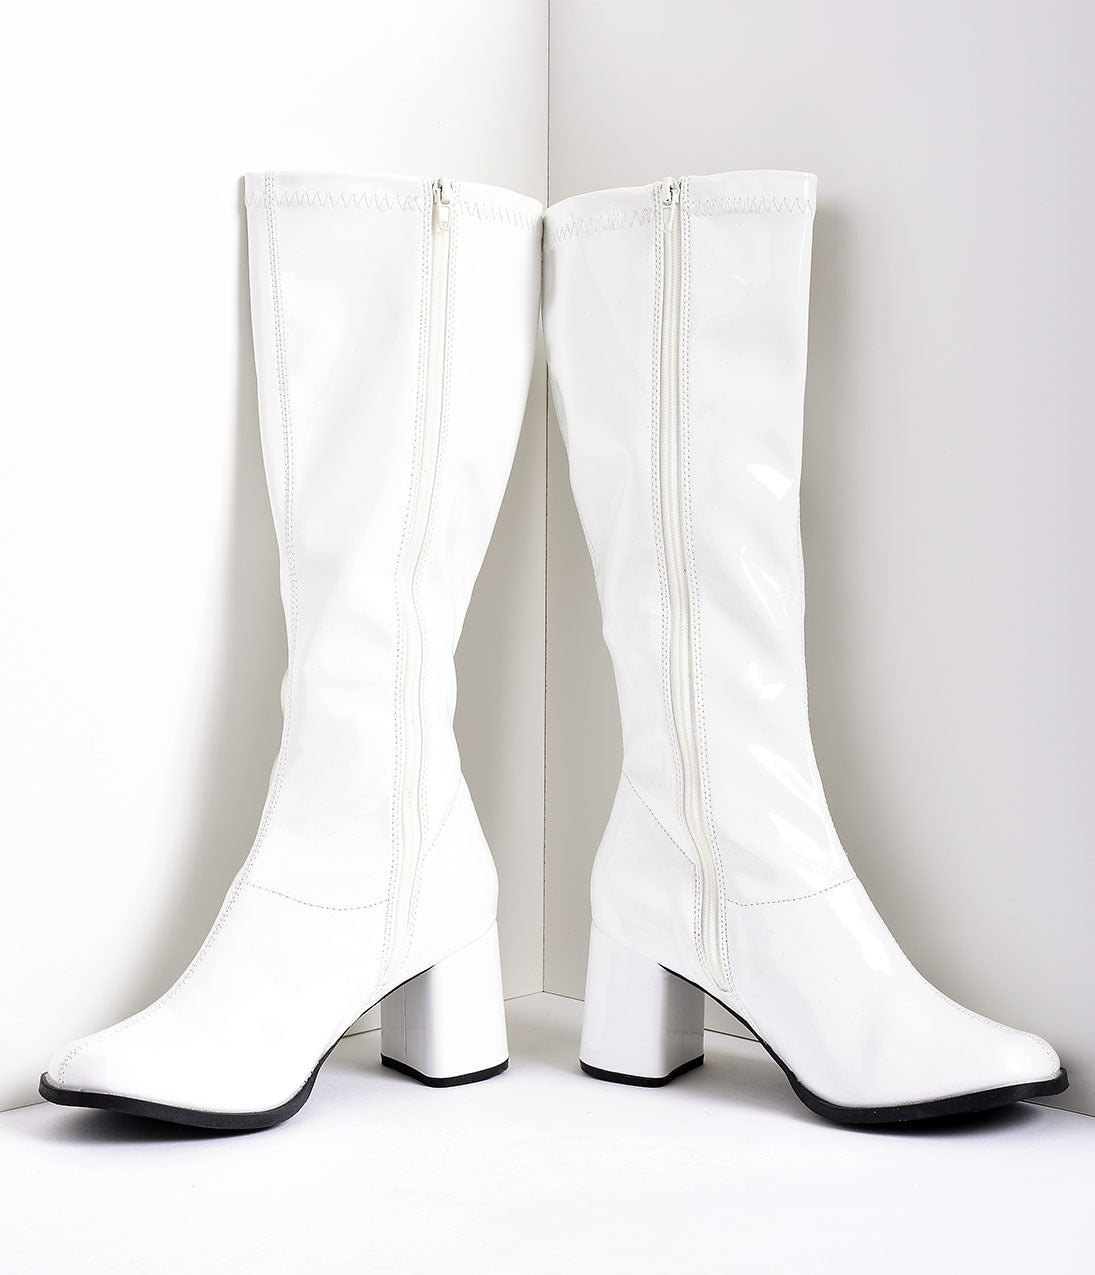 Vintage Boots- Buy Winter Retro Boots White Stretch Patent Knee High Go Go Boots $58.00 AT vintagedancer.com